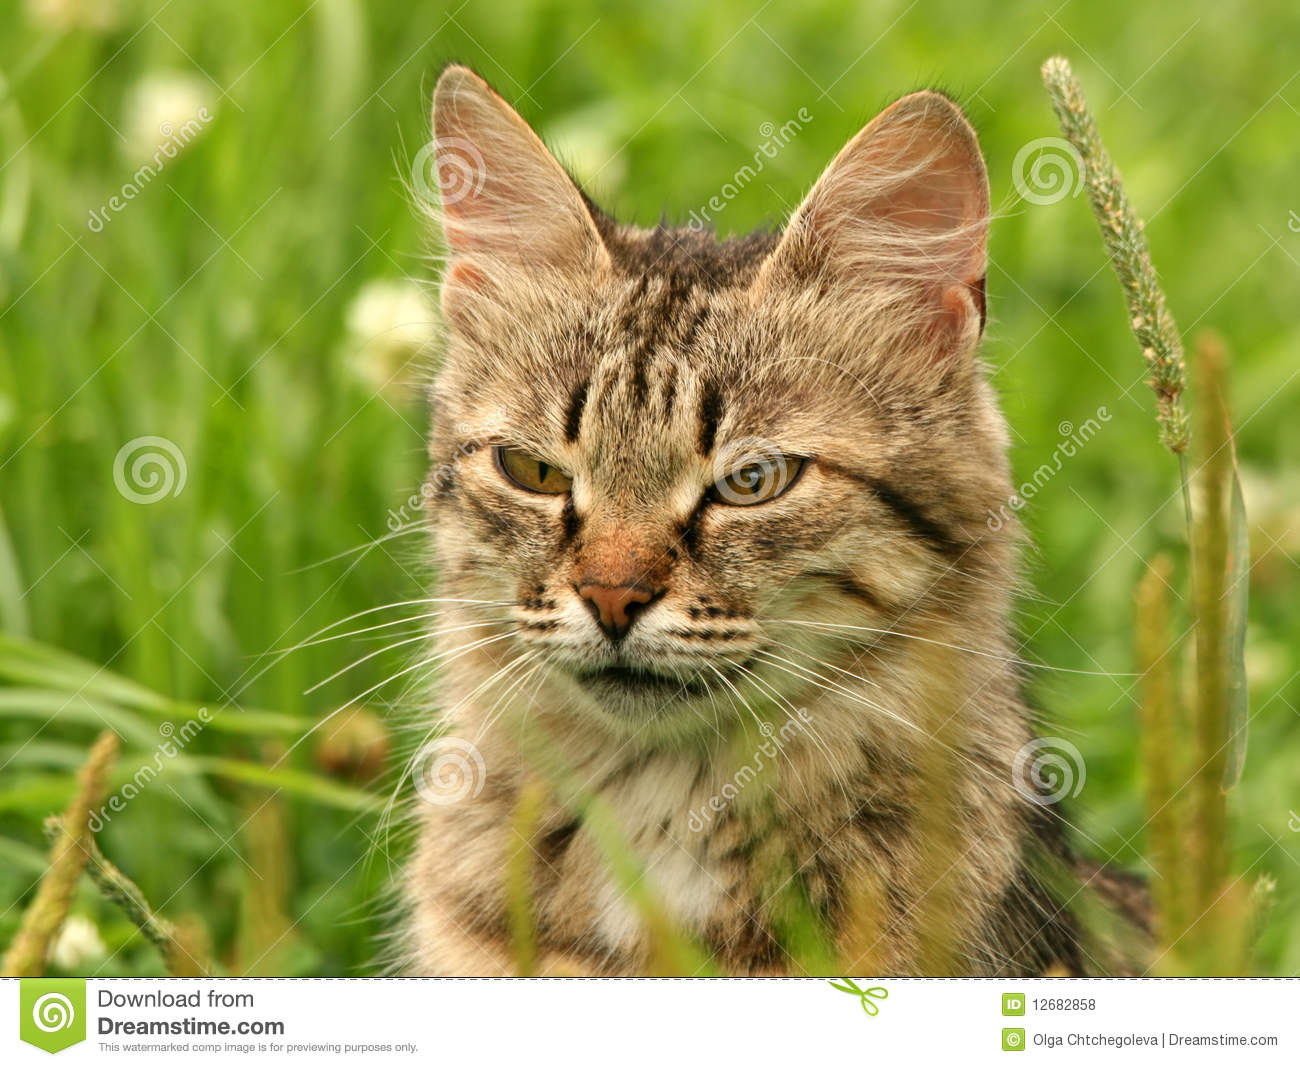 grey-cat-green-grass-12682858.jpg